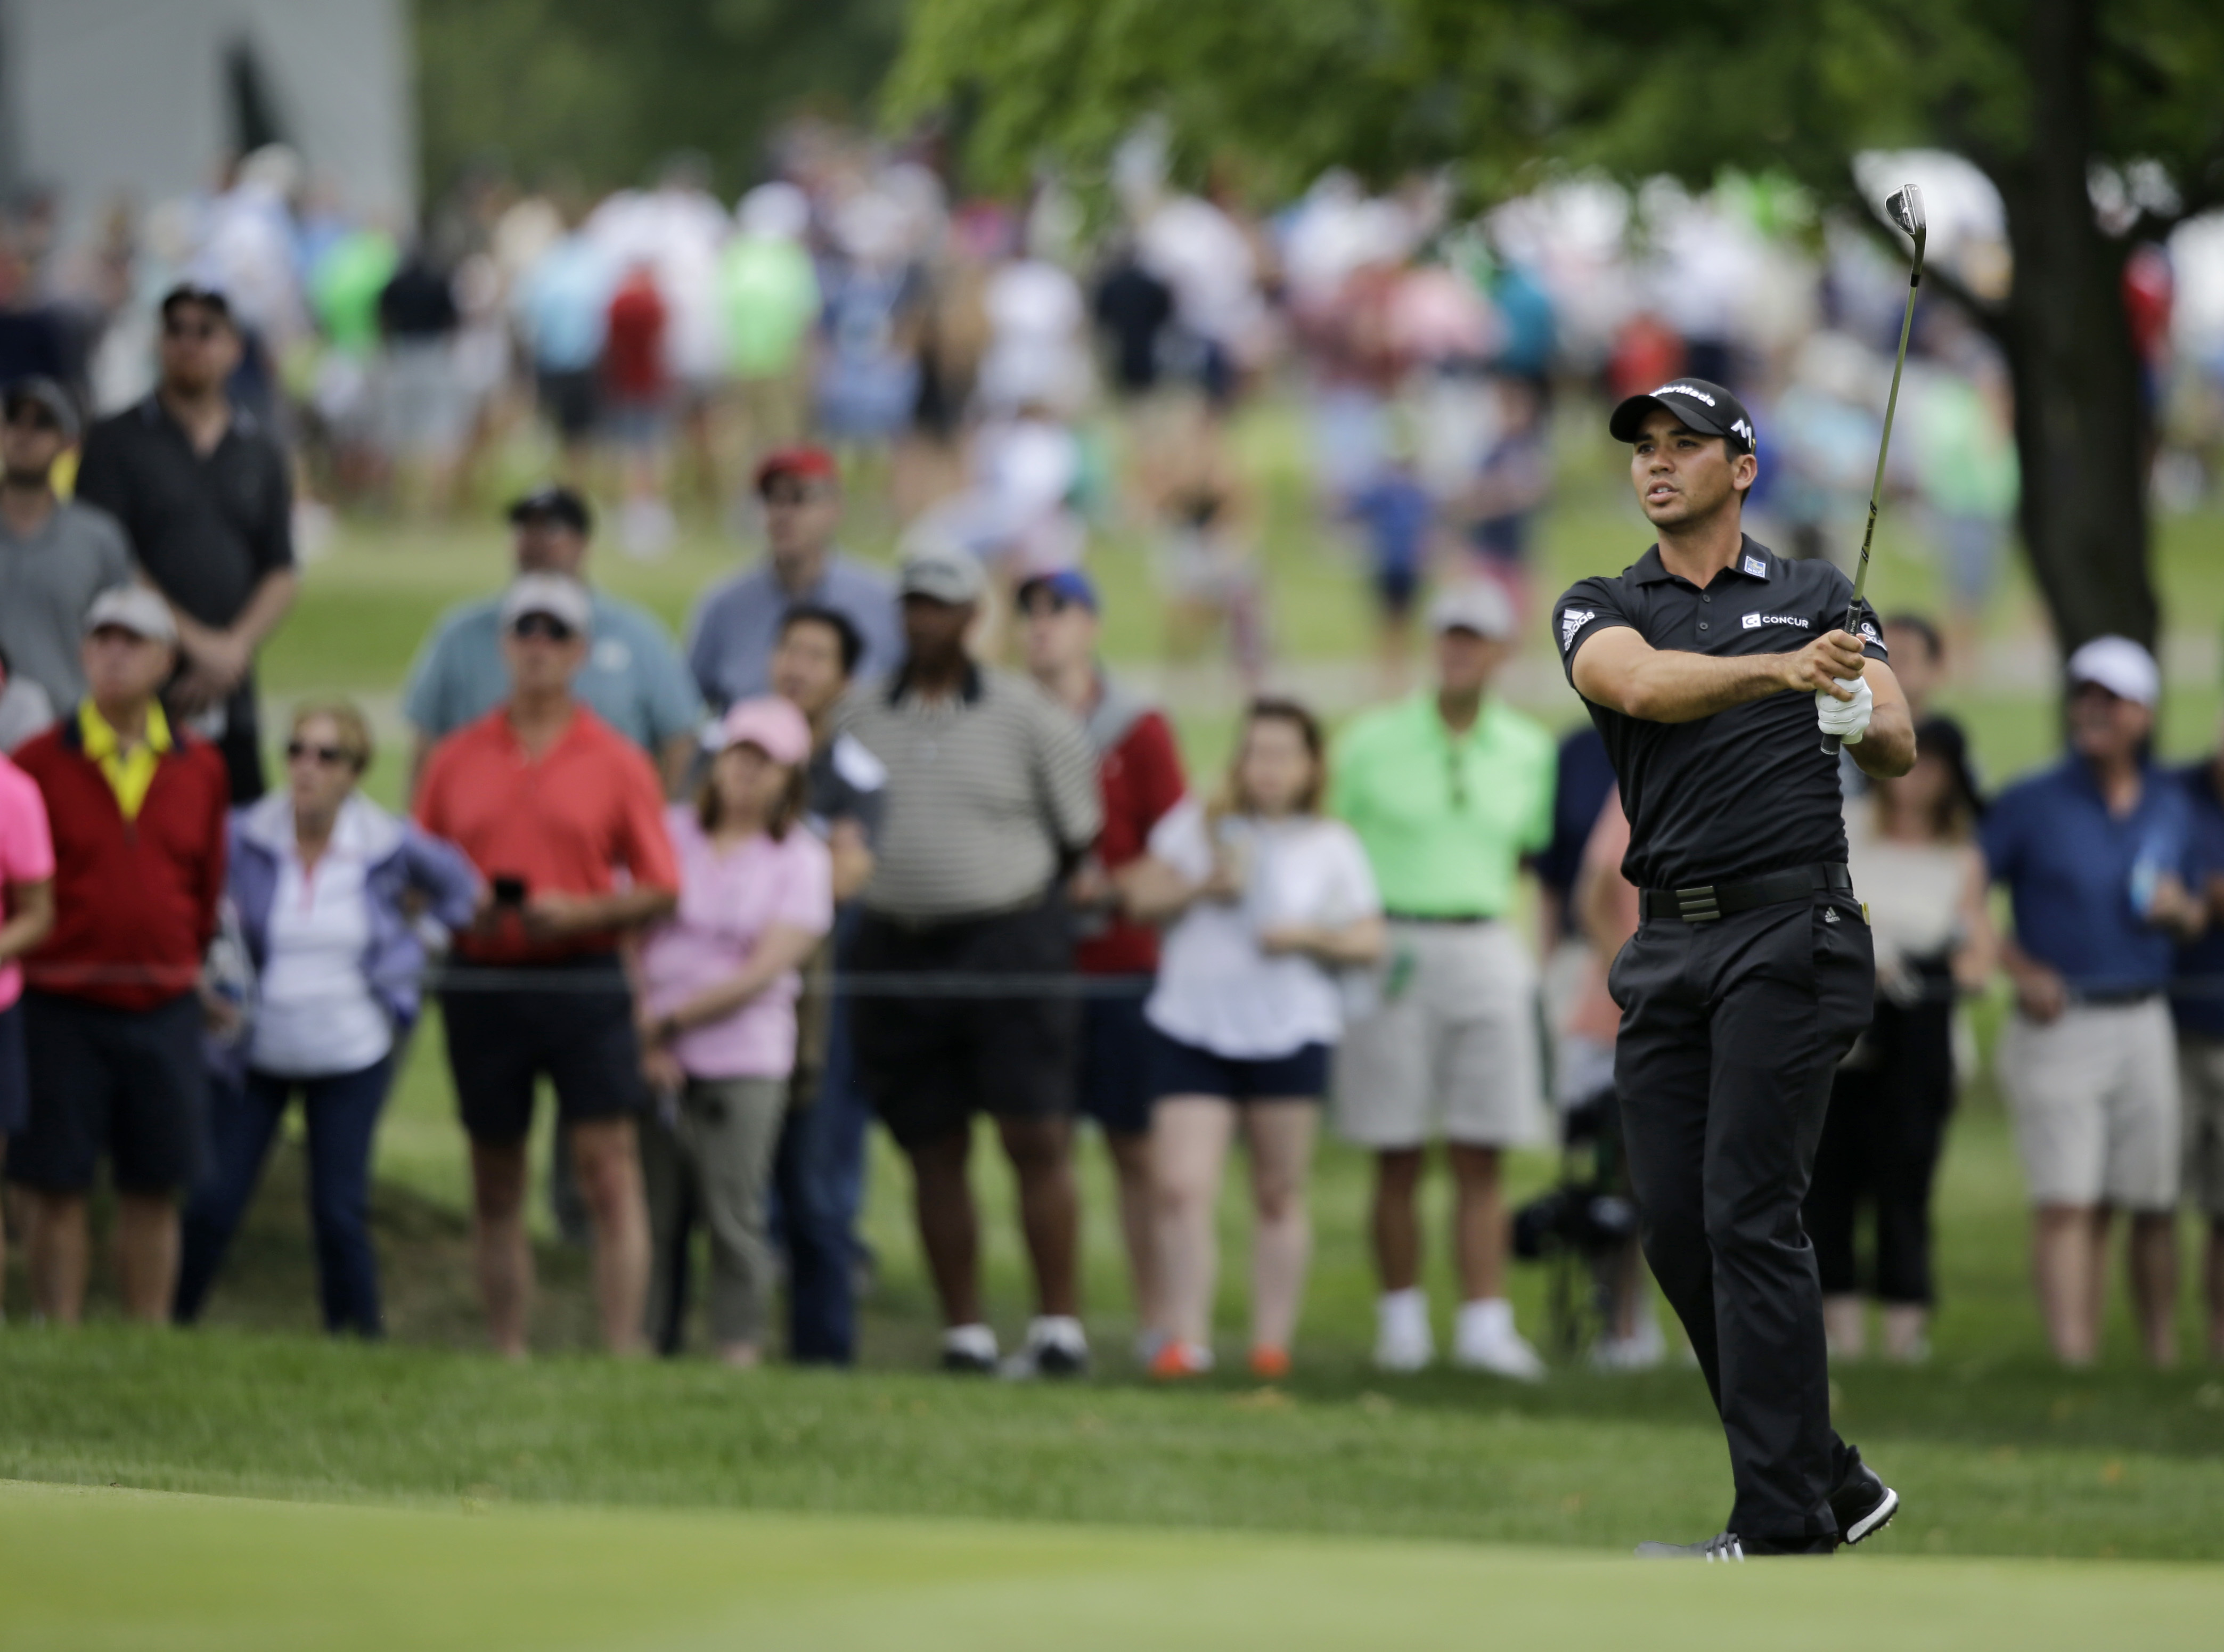 Jason Day hits to the second green during the third round of the Bridgestone Invitational at Firestone Country Club.